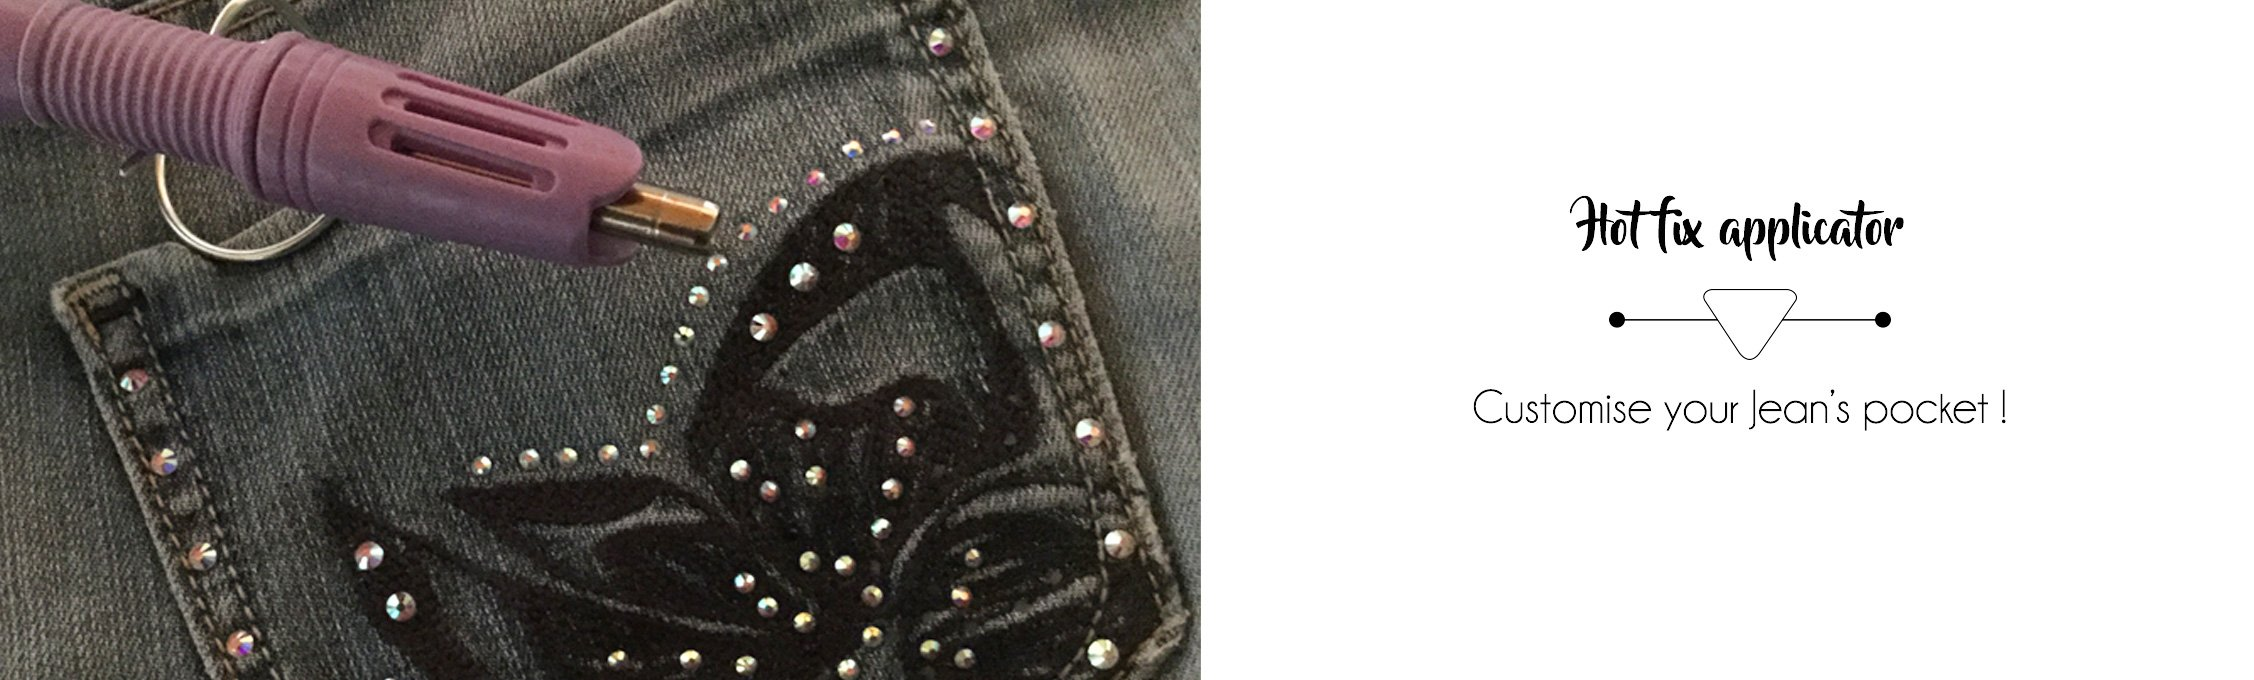 Hot fix applicator to customise your Jean's pocket !